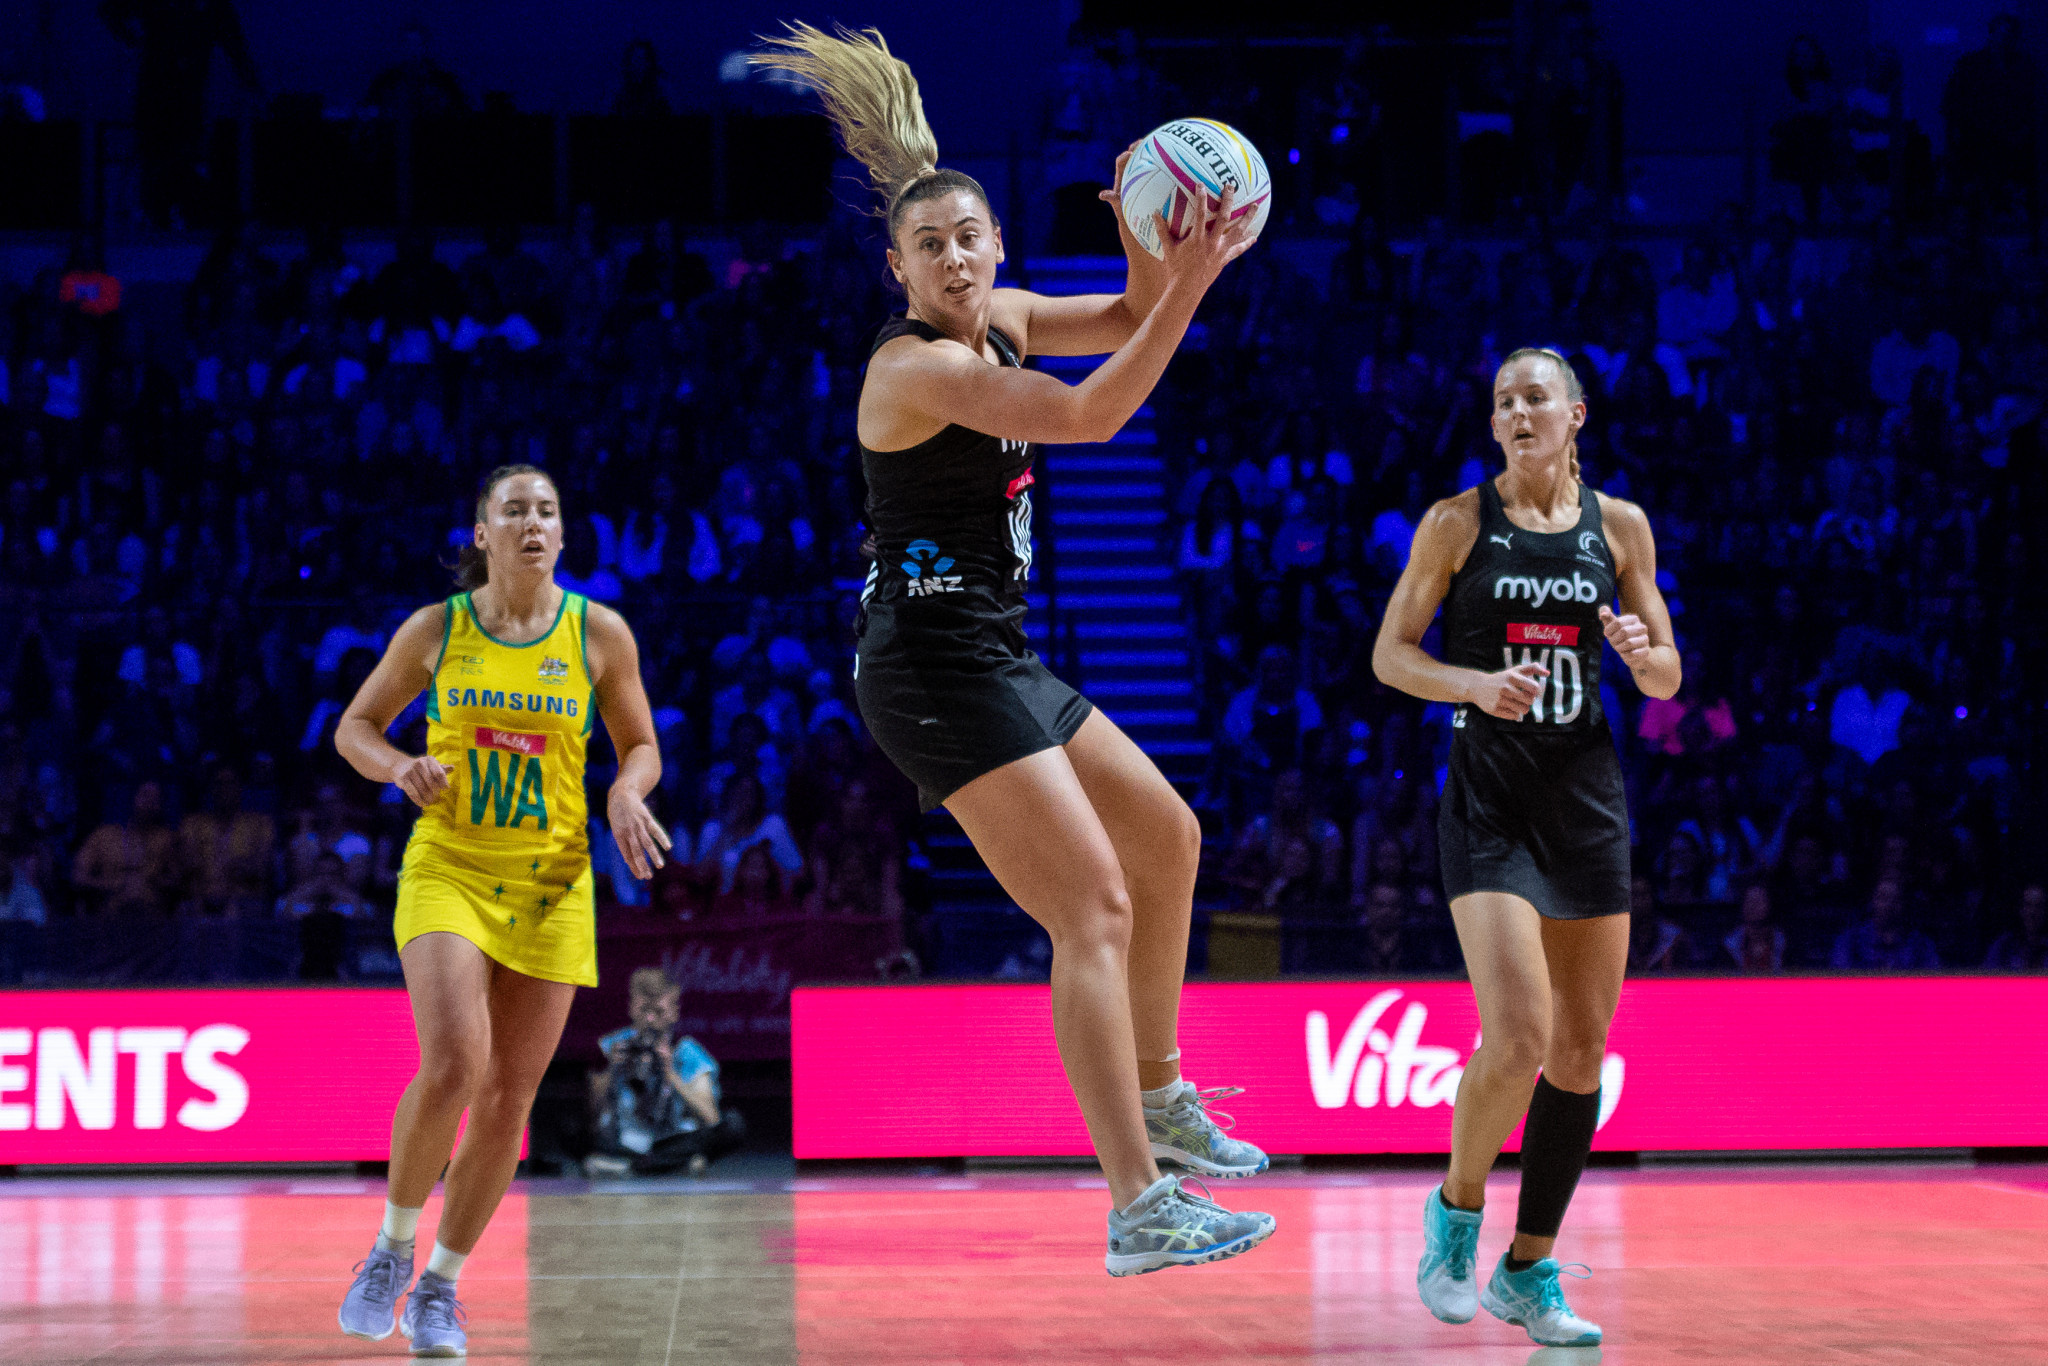 Record-breaking 112,000 tickets sold for Netball World Cup